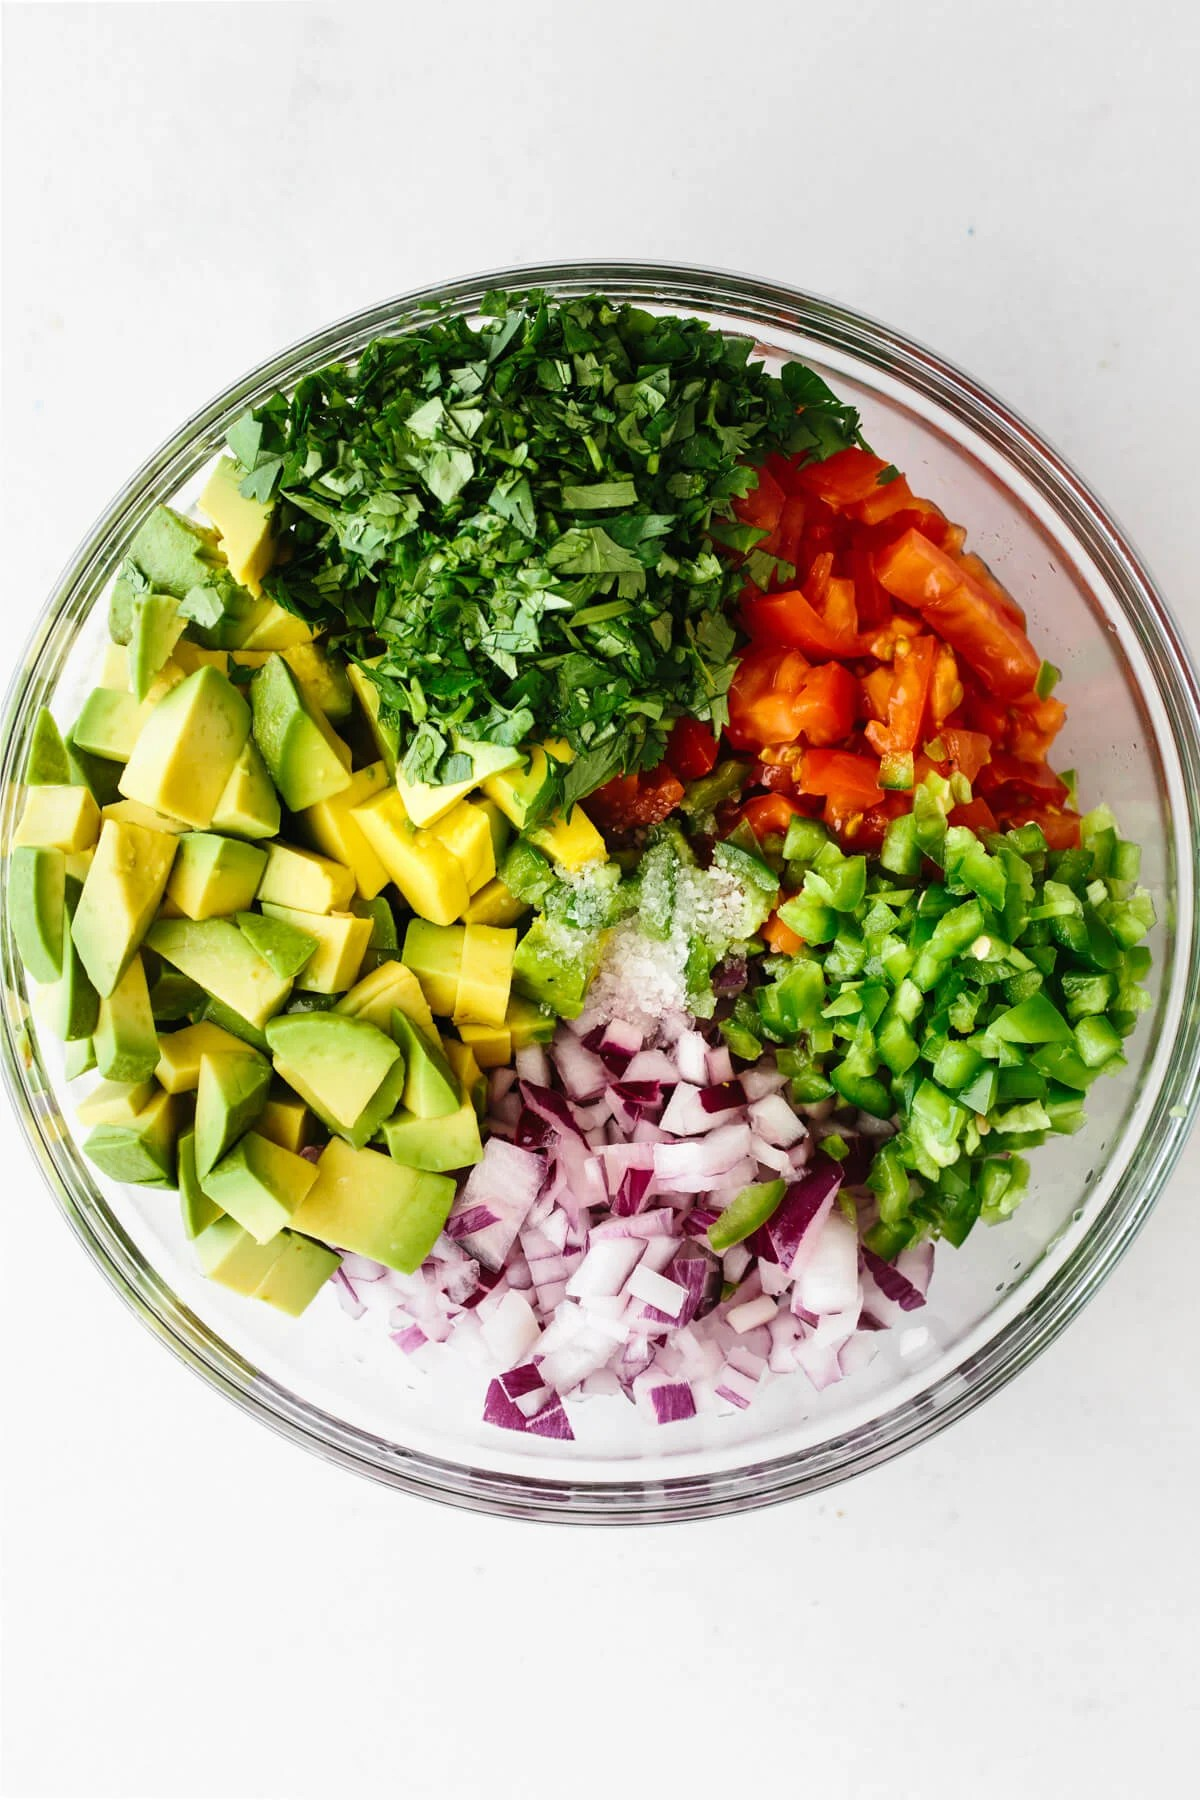 A mixing bowl with the ingredients to make avocado salsa.